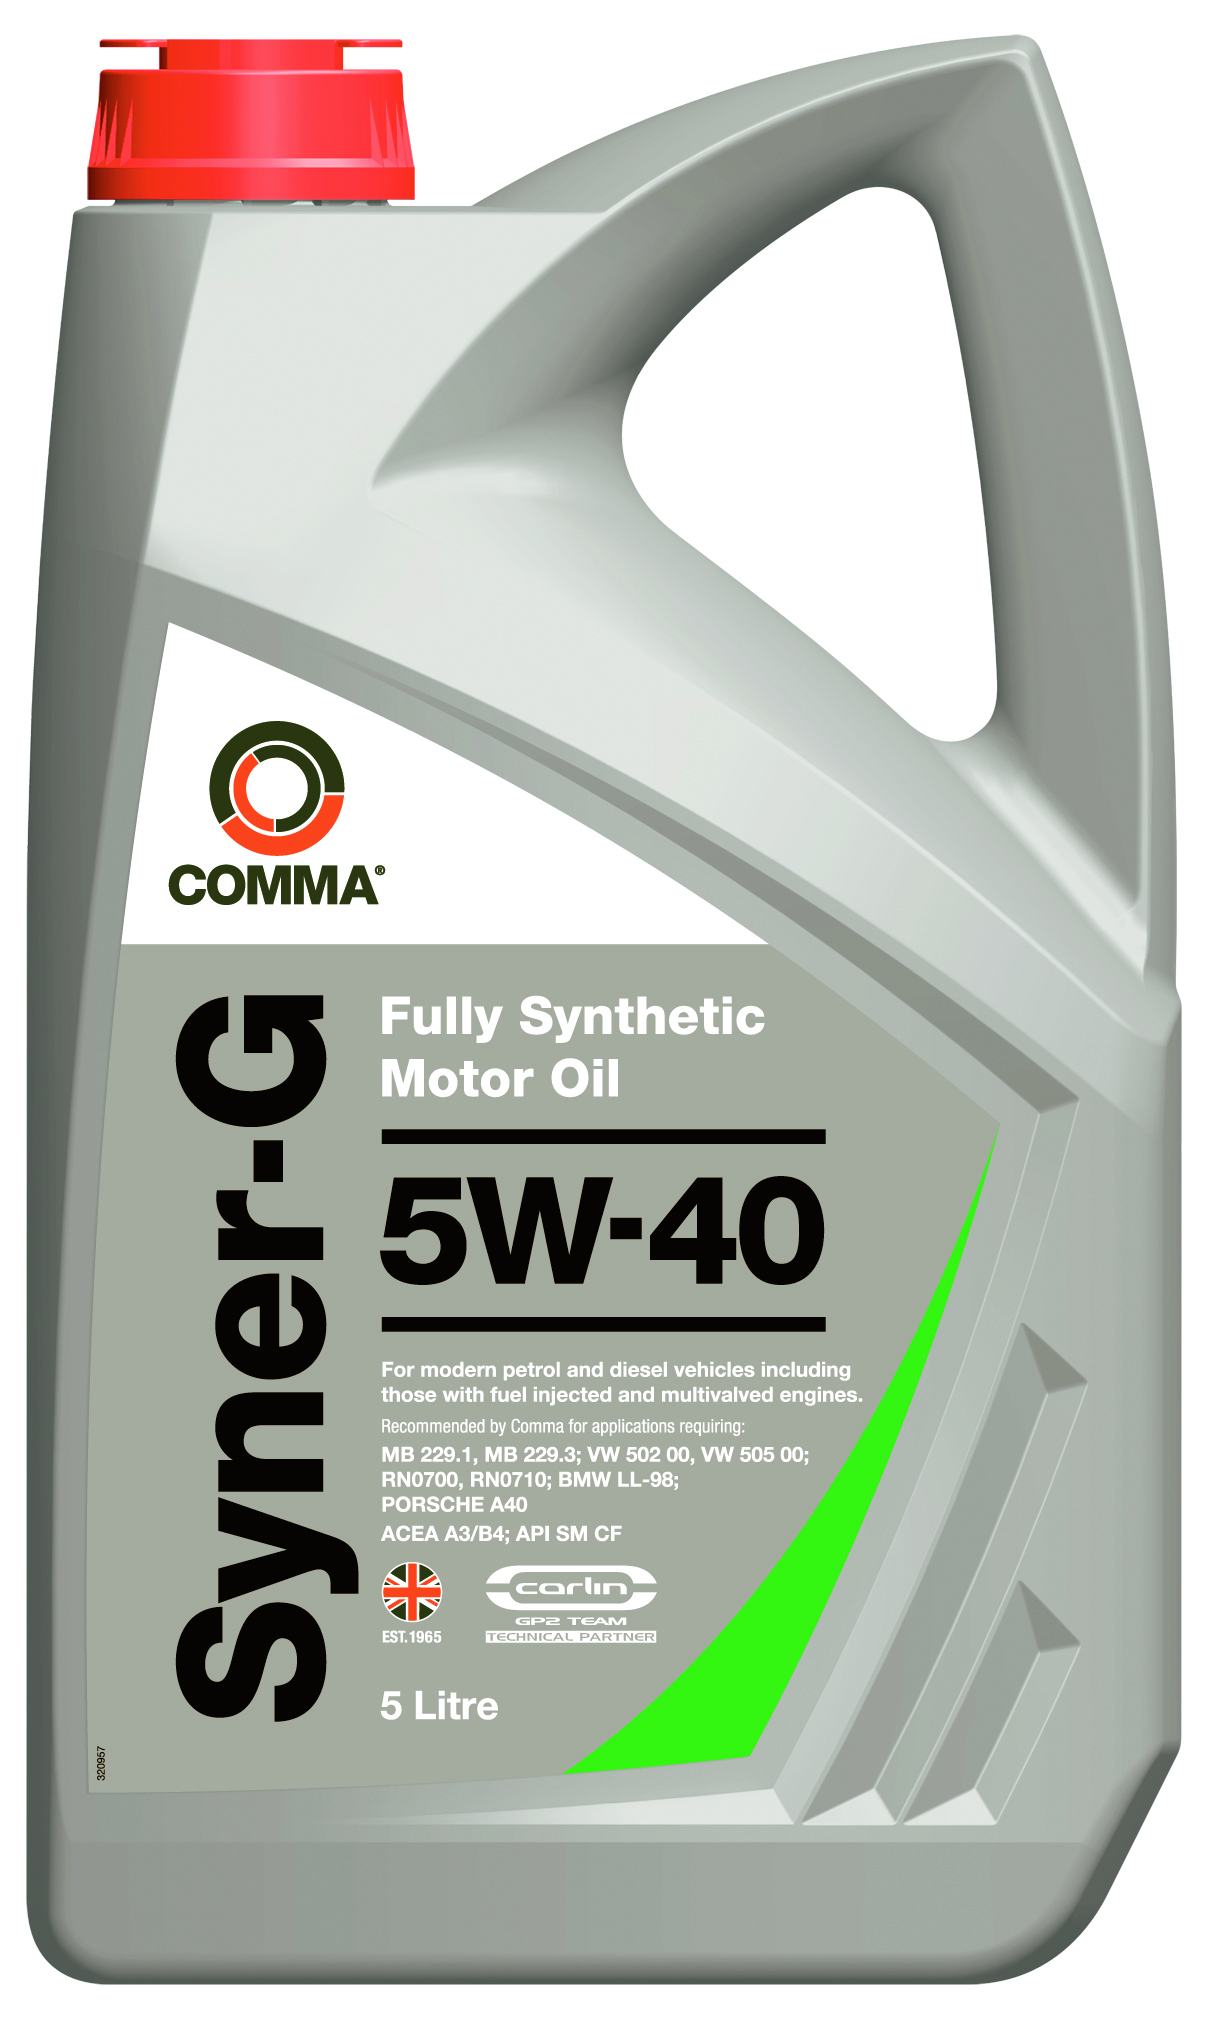 Comma Syner G 5w 40 Fully Synthetic Motor Engine Oil 5